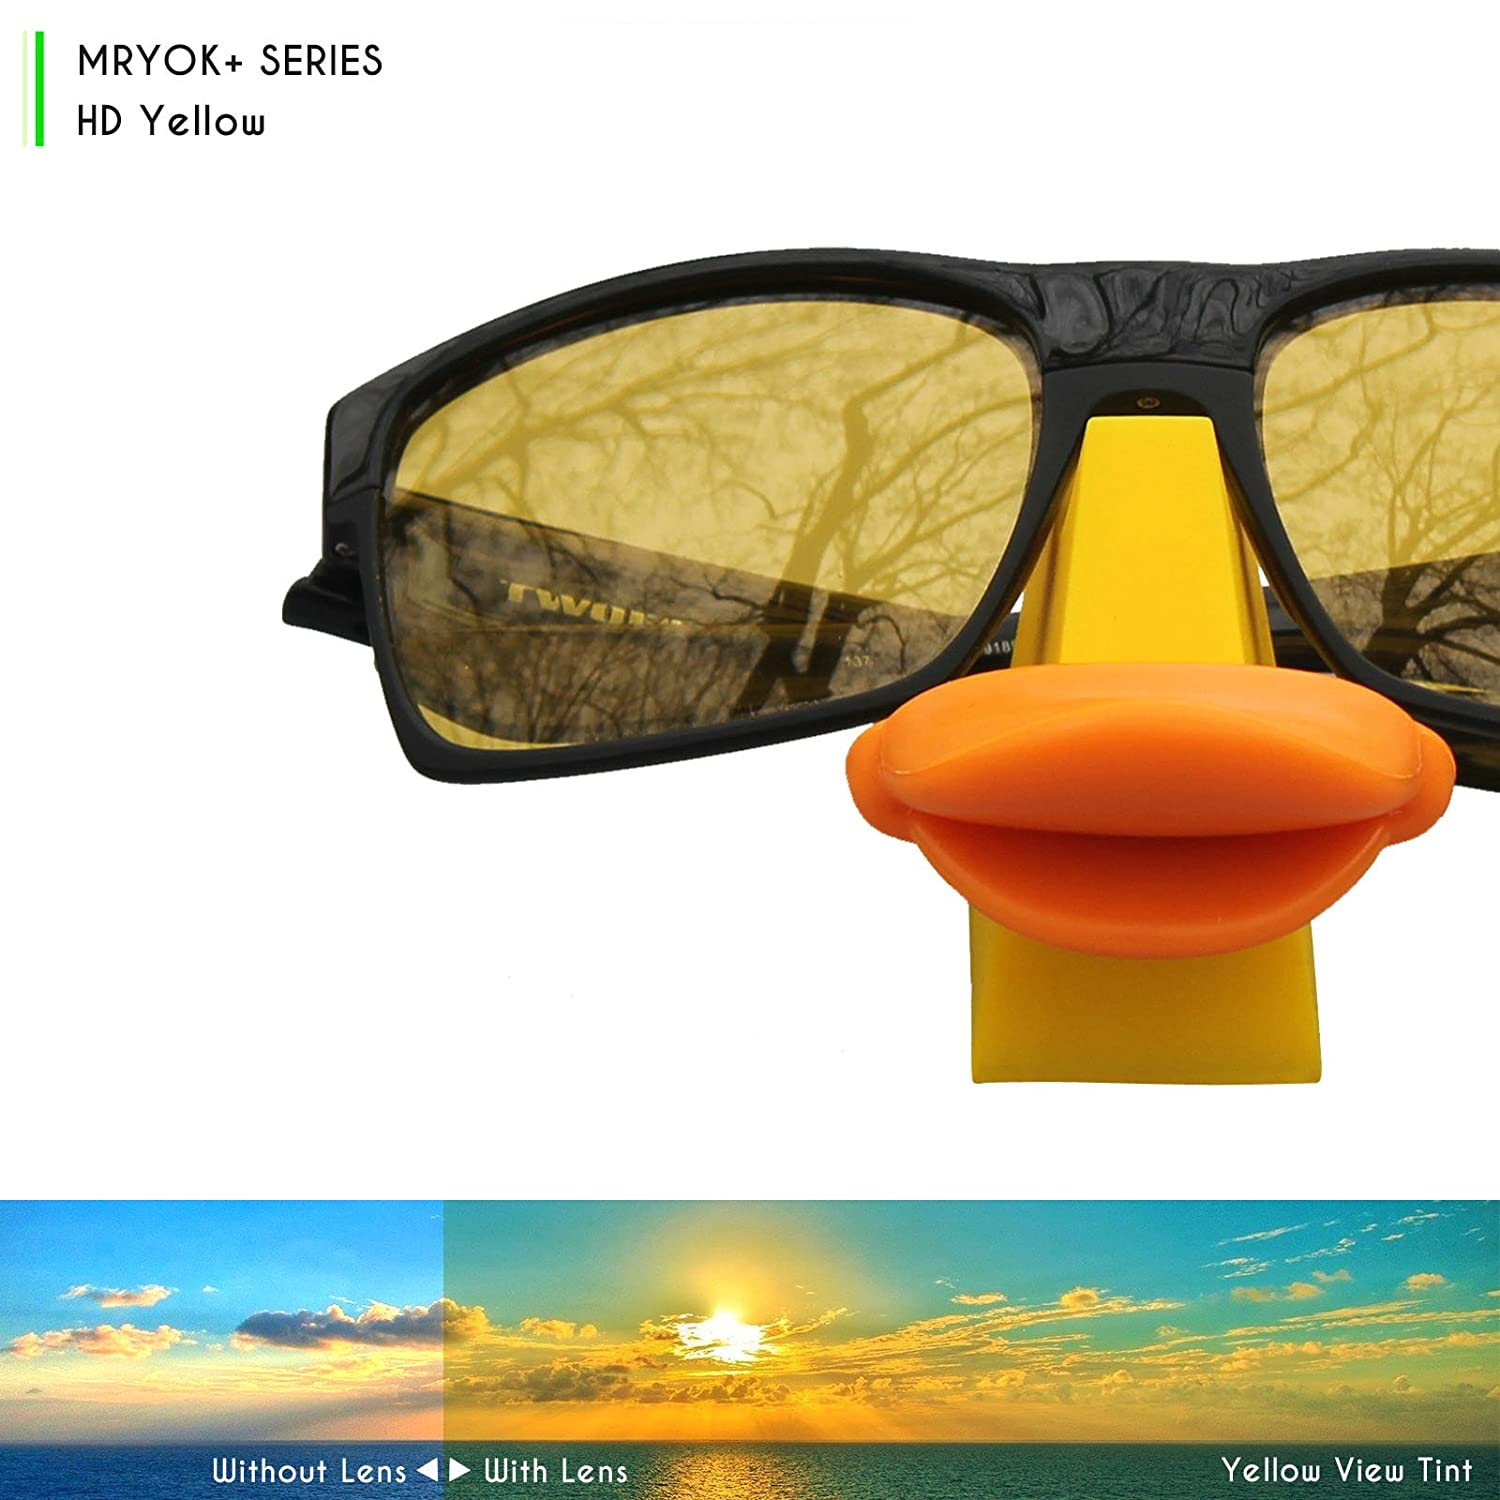 332c330f7d Mryok+ Polarized Replacement Lenses for Oakley Twitch - HD Yellow   Amazon.ca  Clothing   Accessories